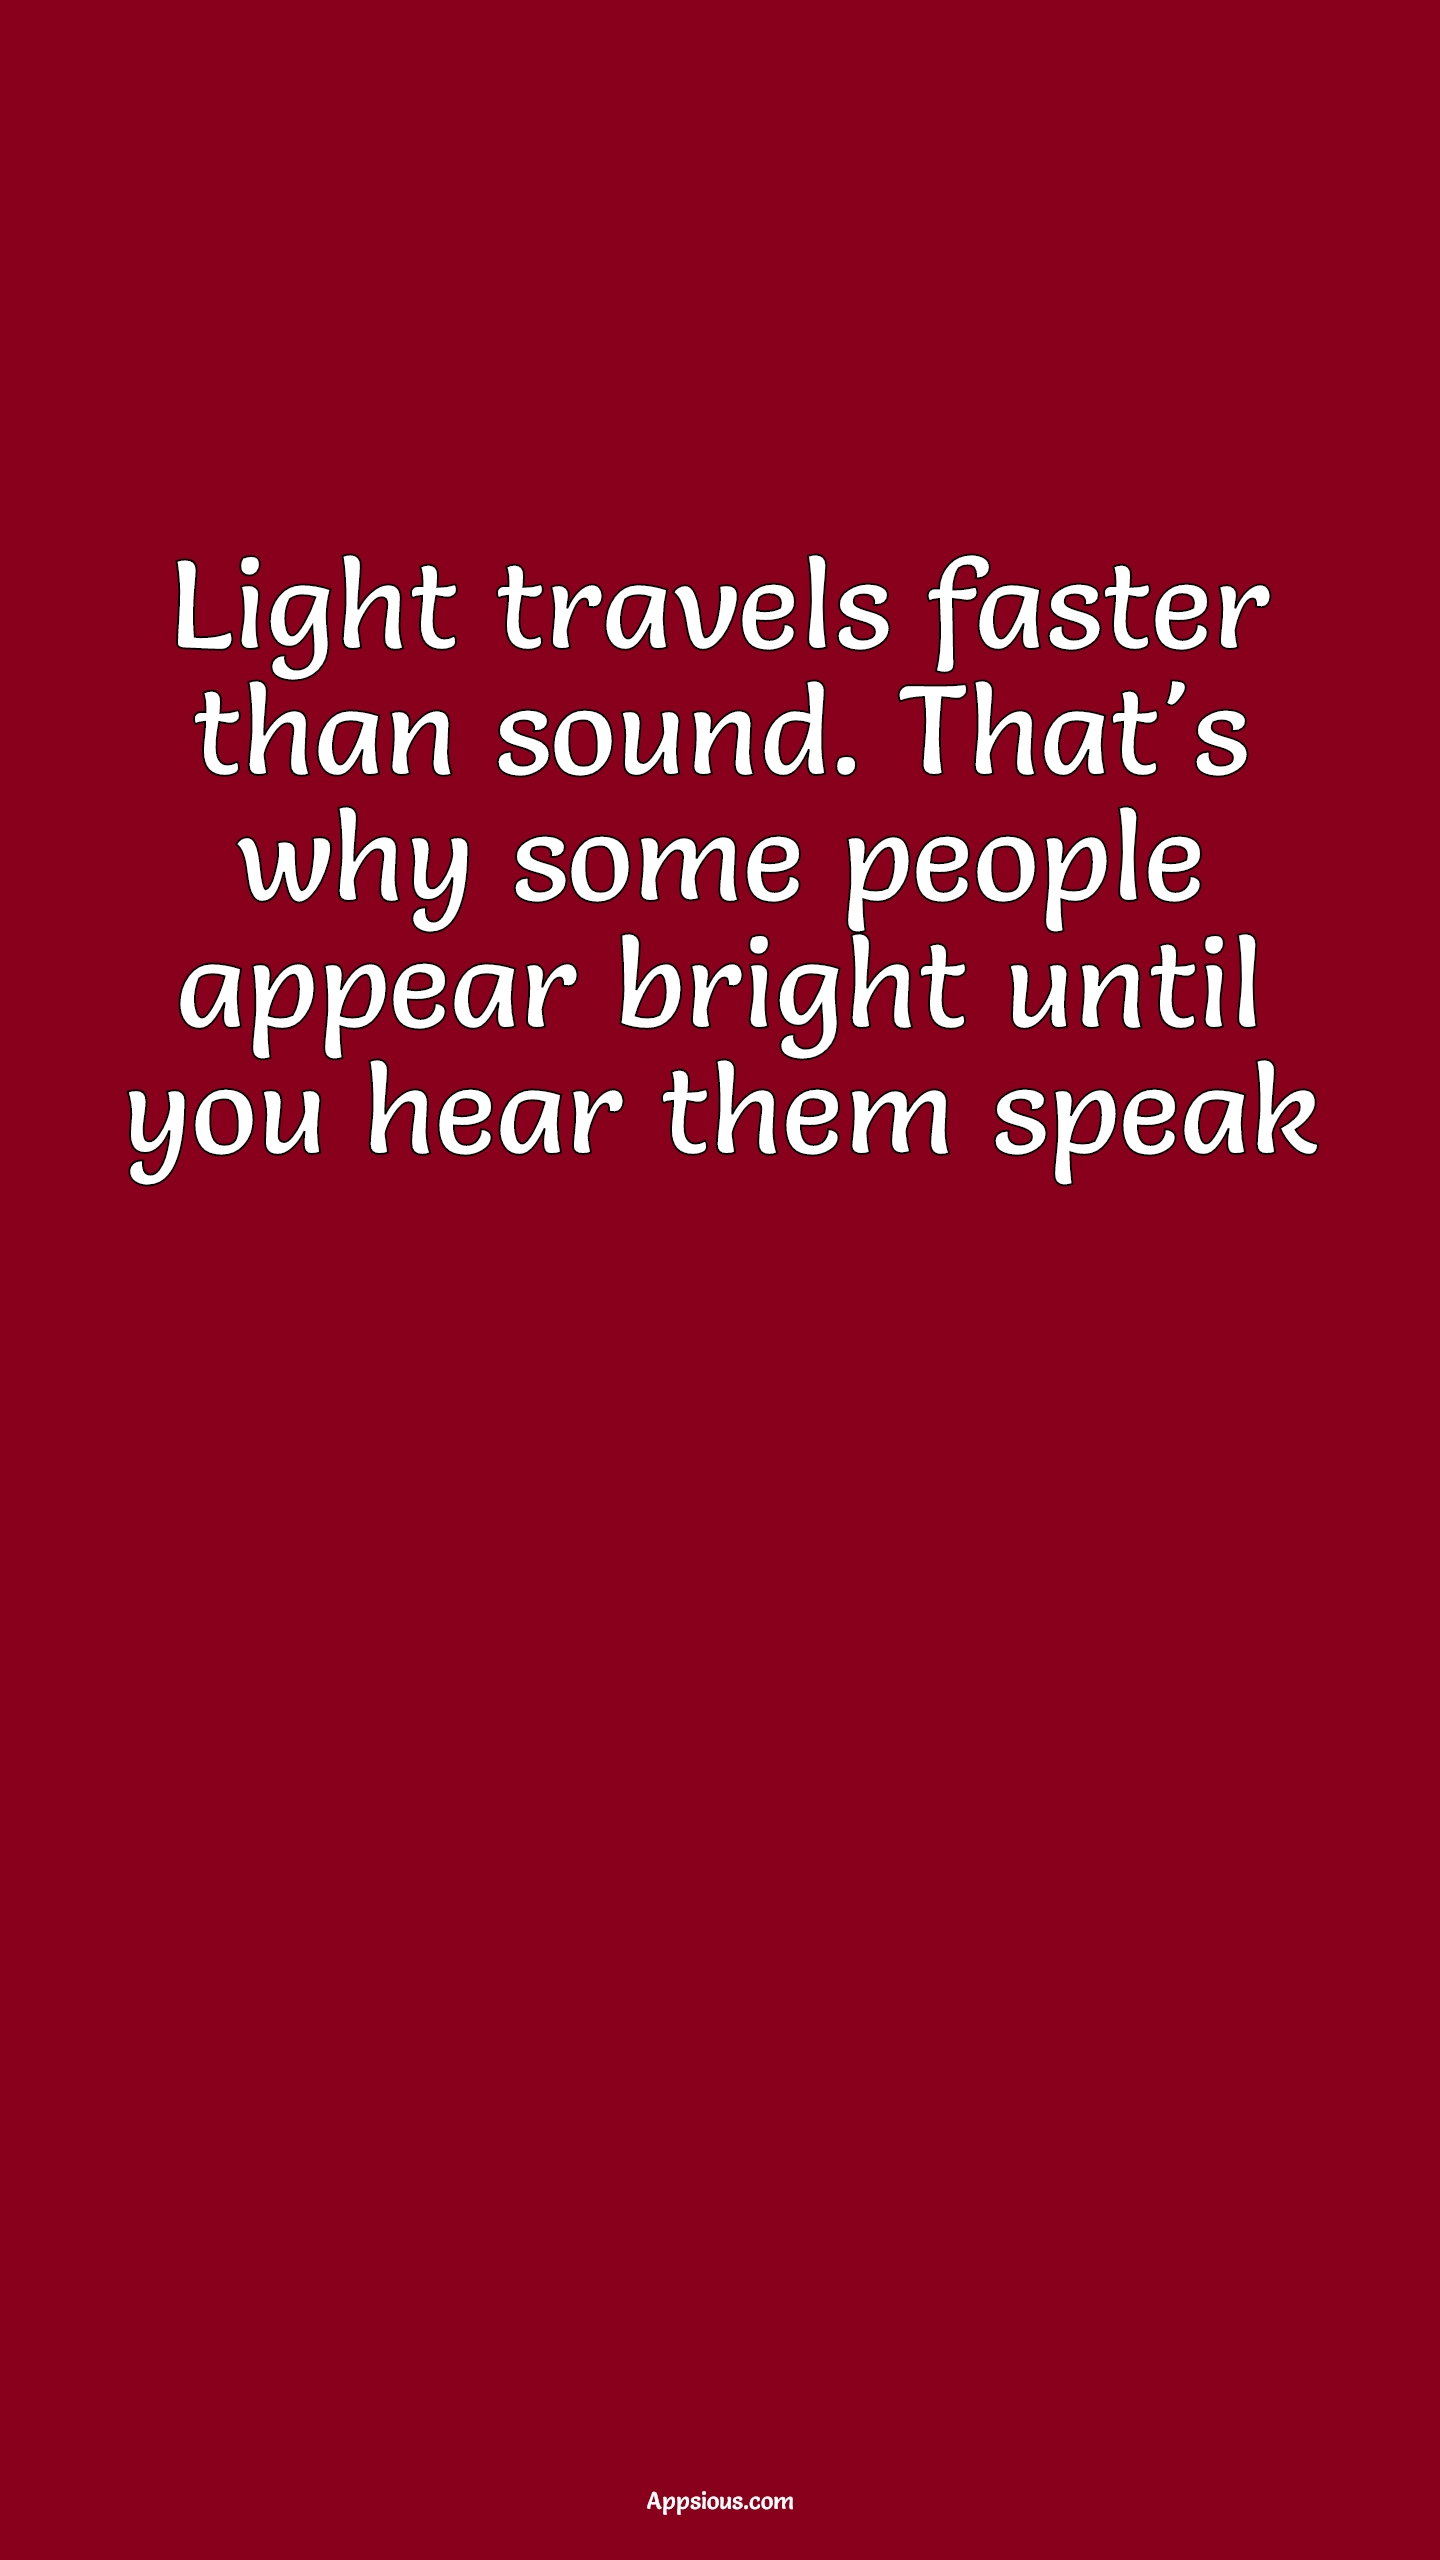 Light travels faster than sound. That's why some people appear bright until you hear them speak